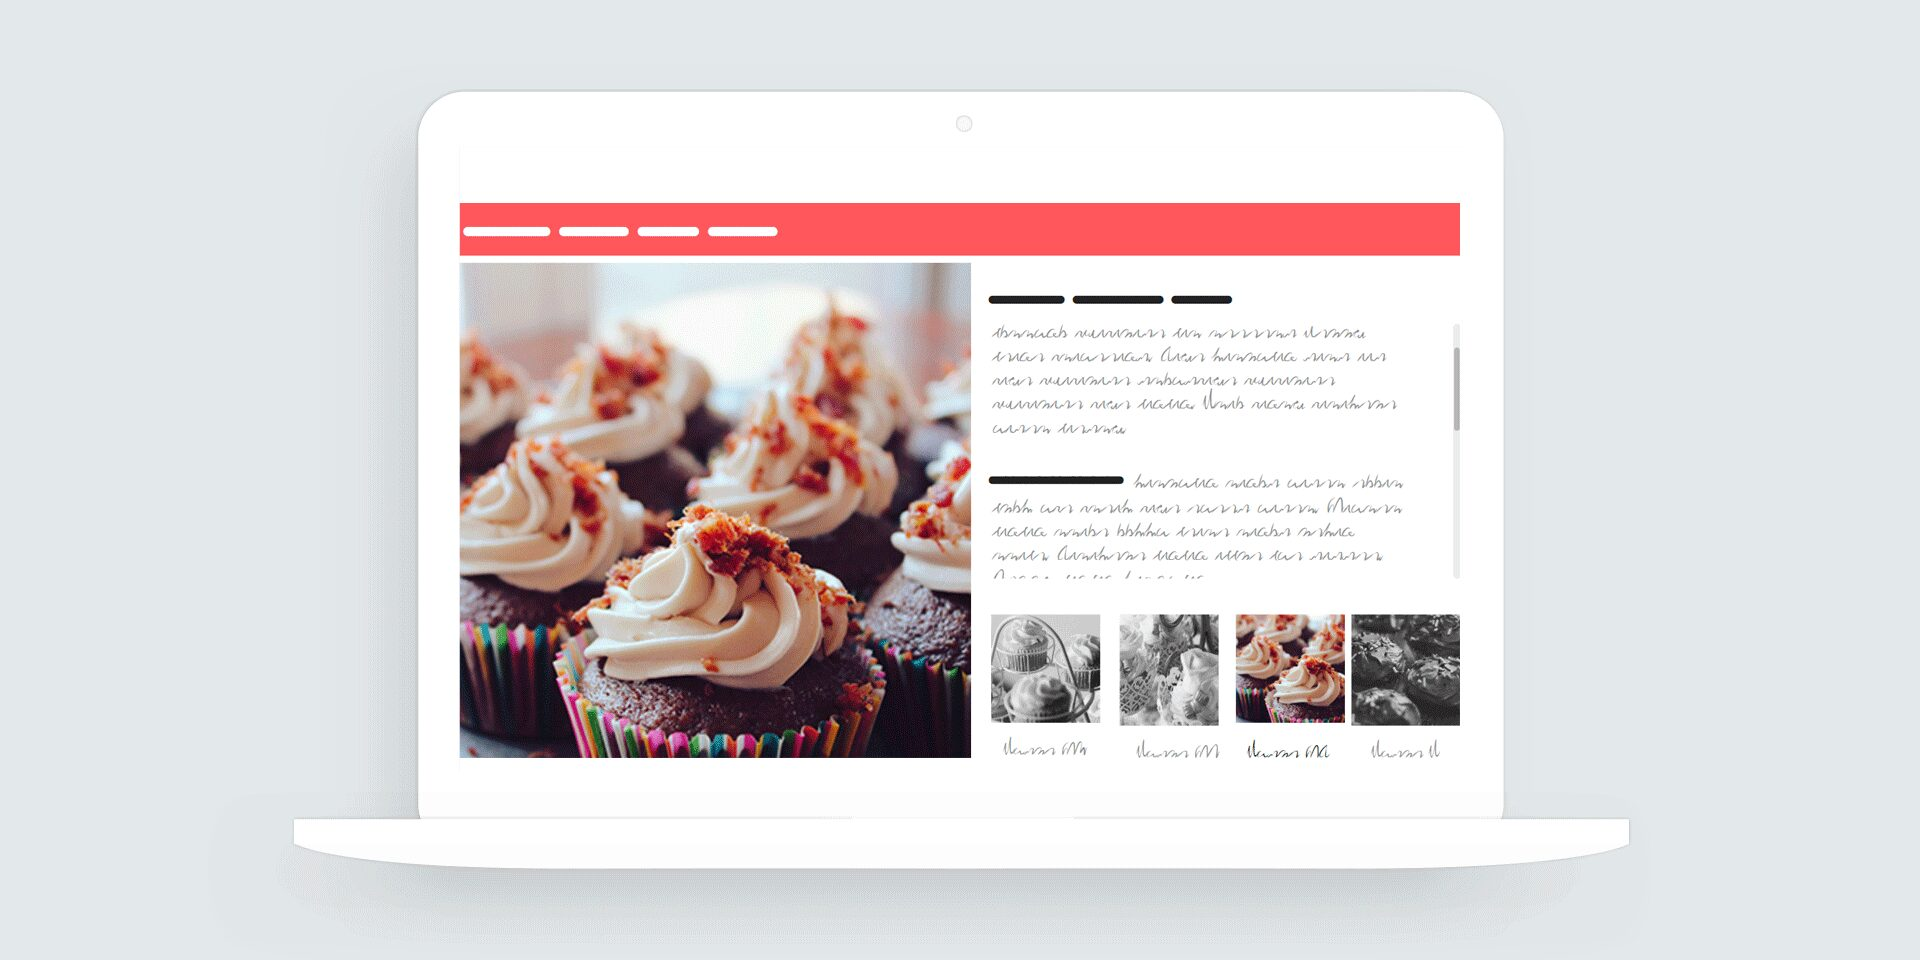 Storyline: Tabs Interaction with Scrolling Panel